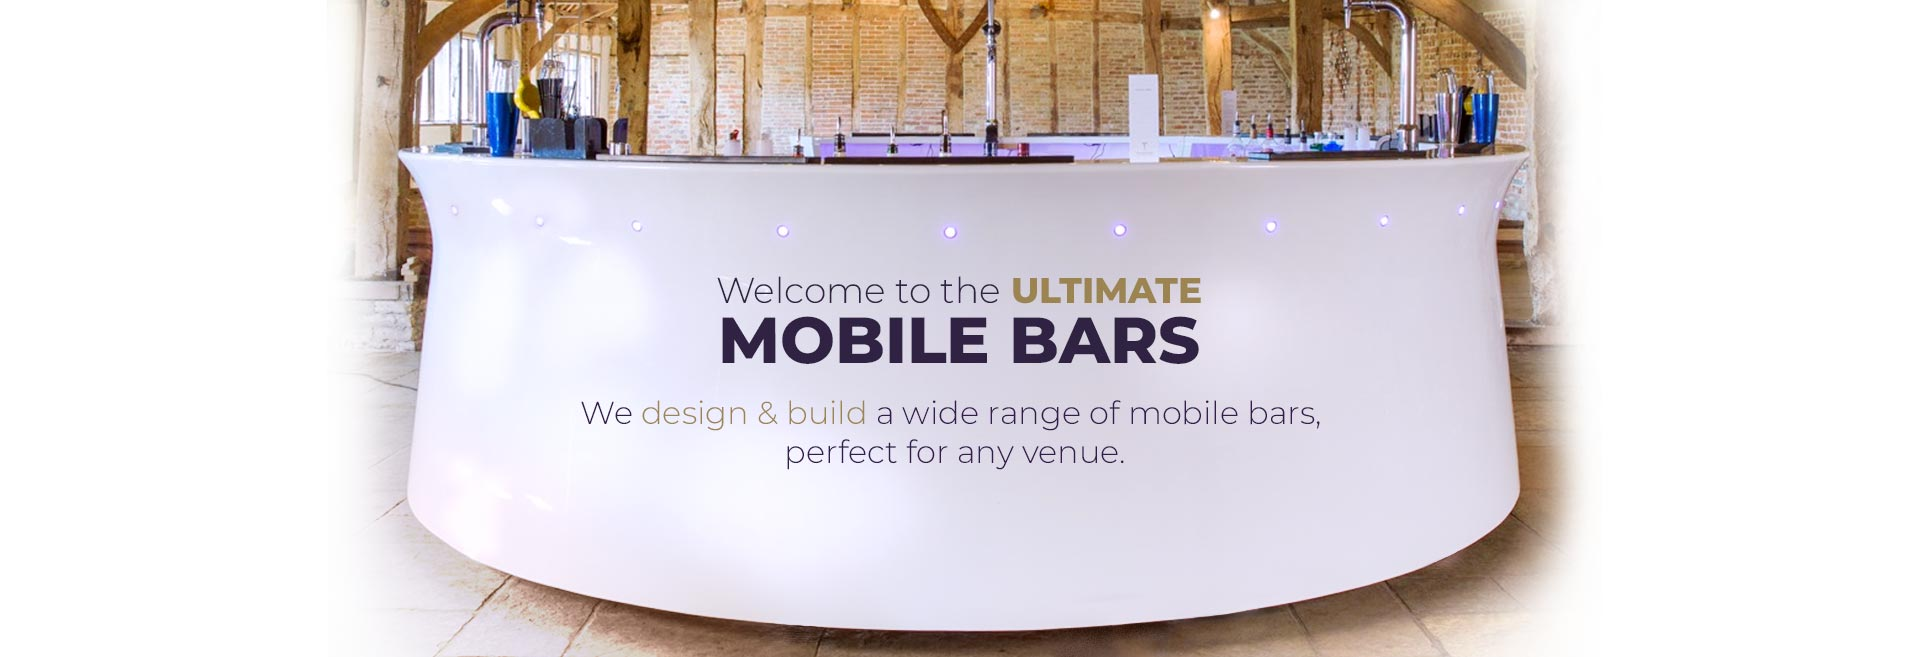 Ultimate Mobile Bars